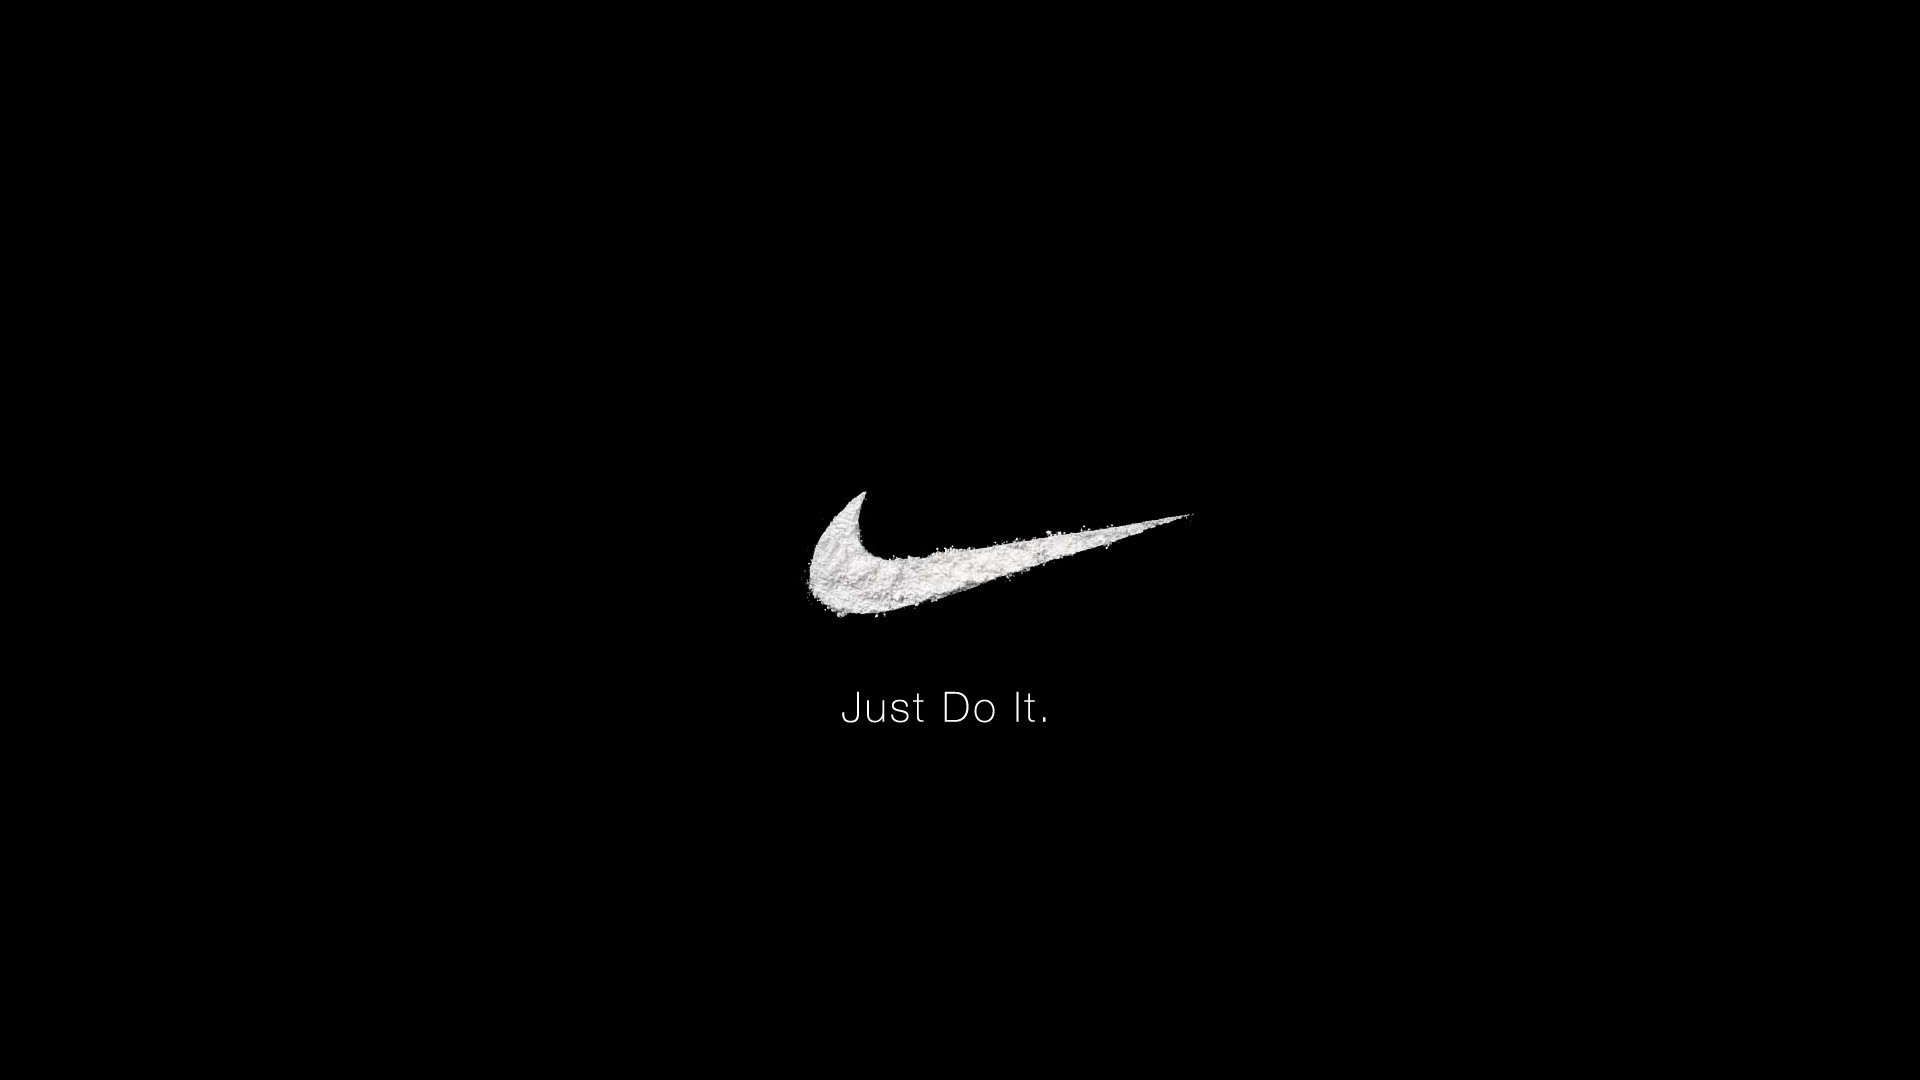 Nike logo wallpaper hd 2018 wallpapertag - Nike wallpaper hd ...